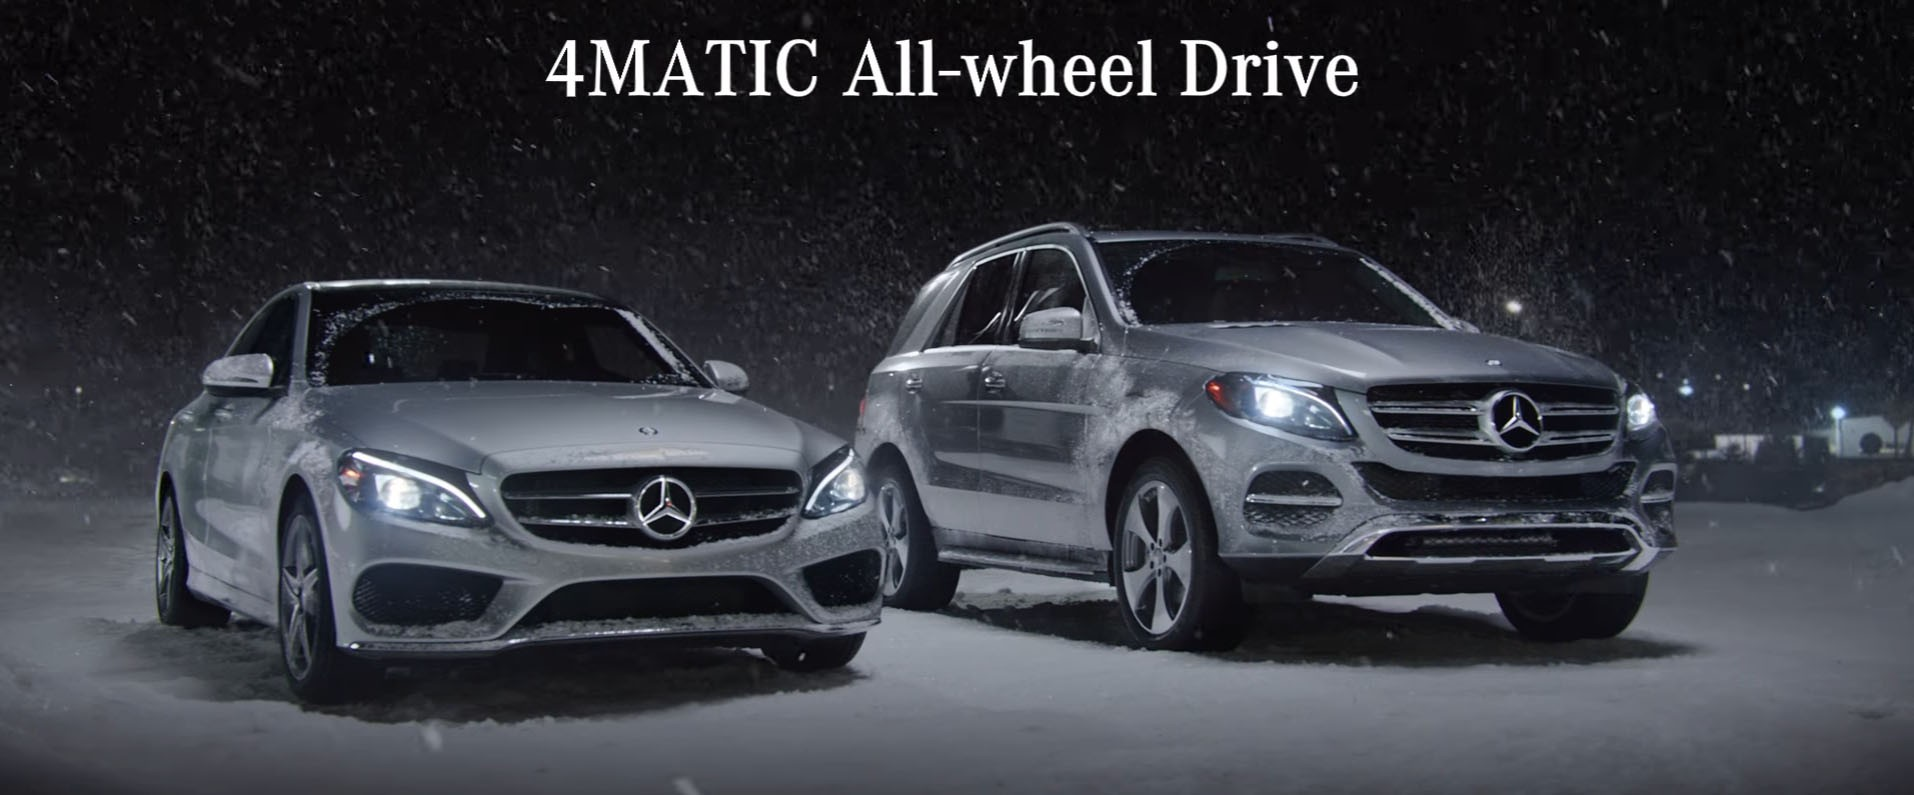 Snow Date The 4matic 4 Wheel Drive Will Get You There